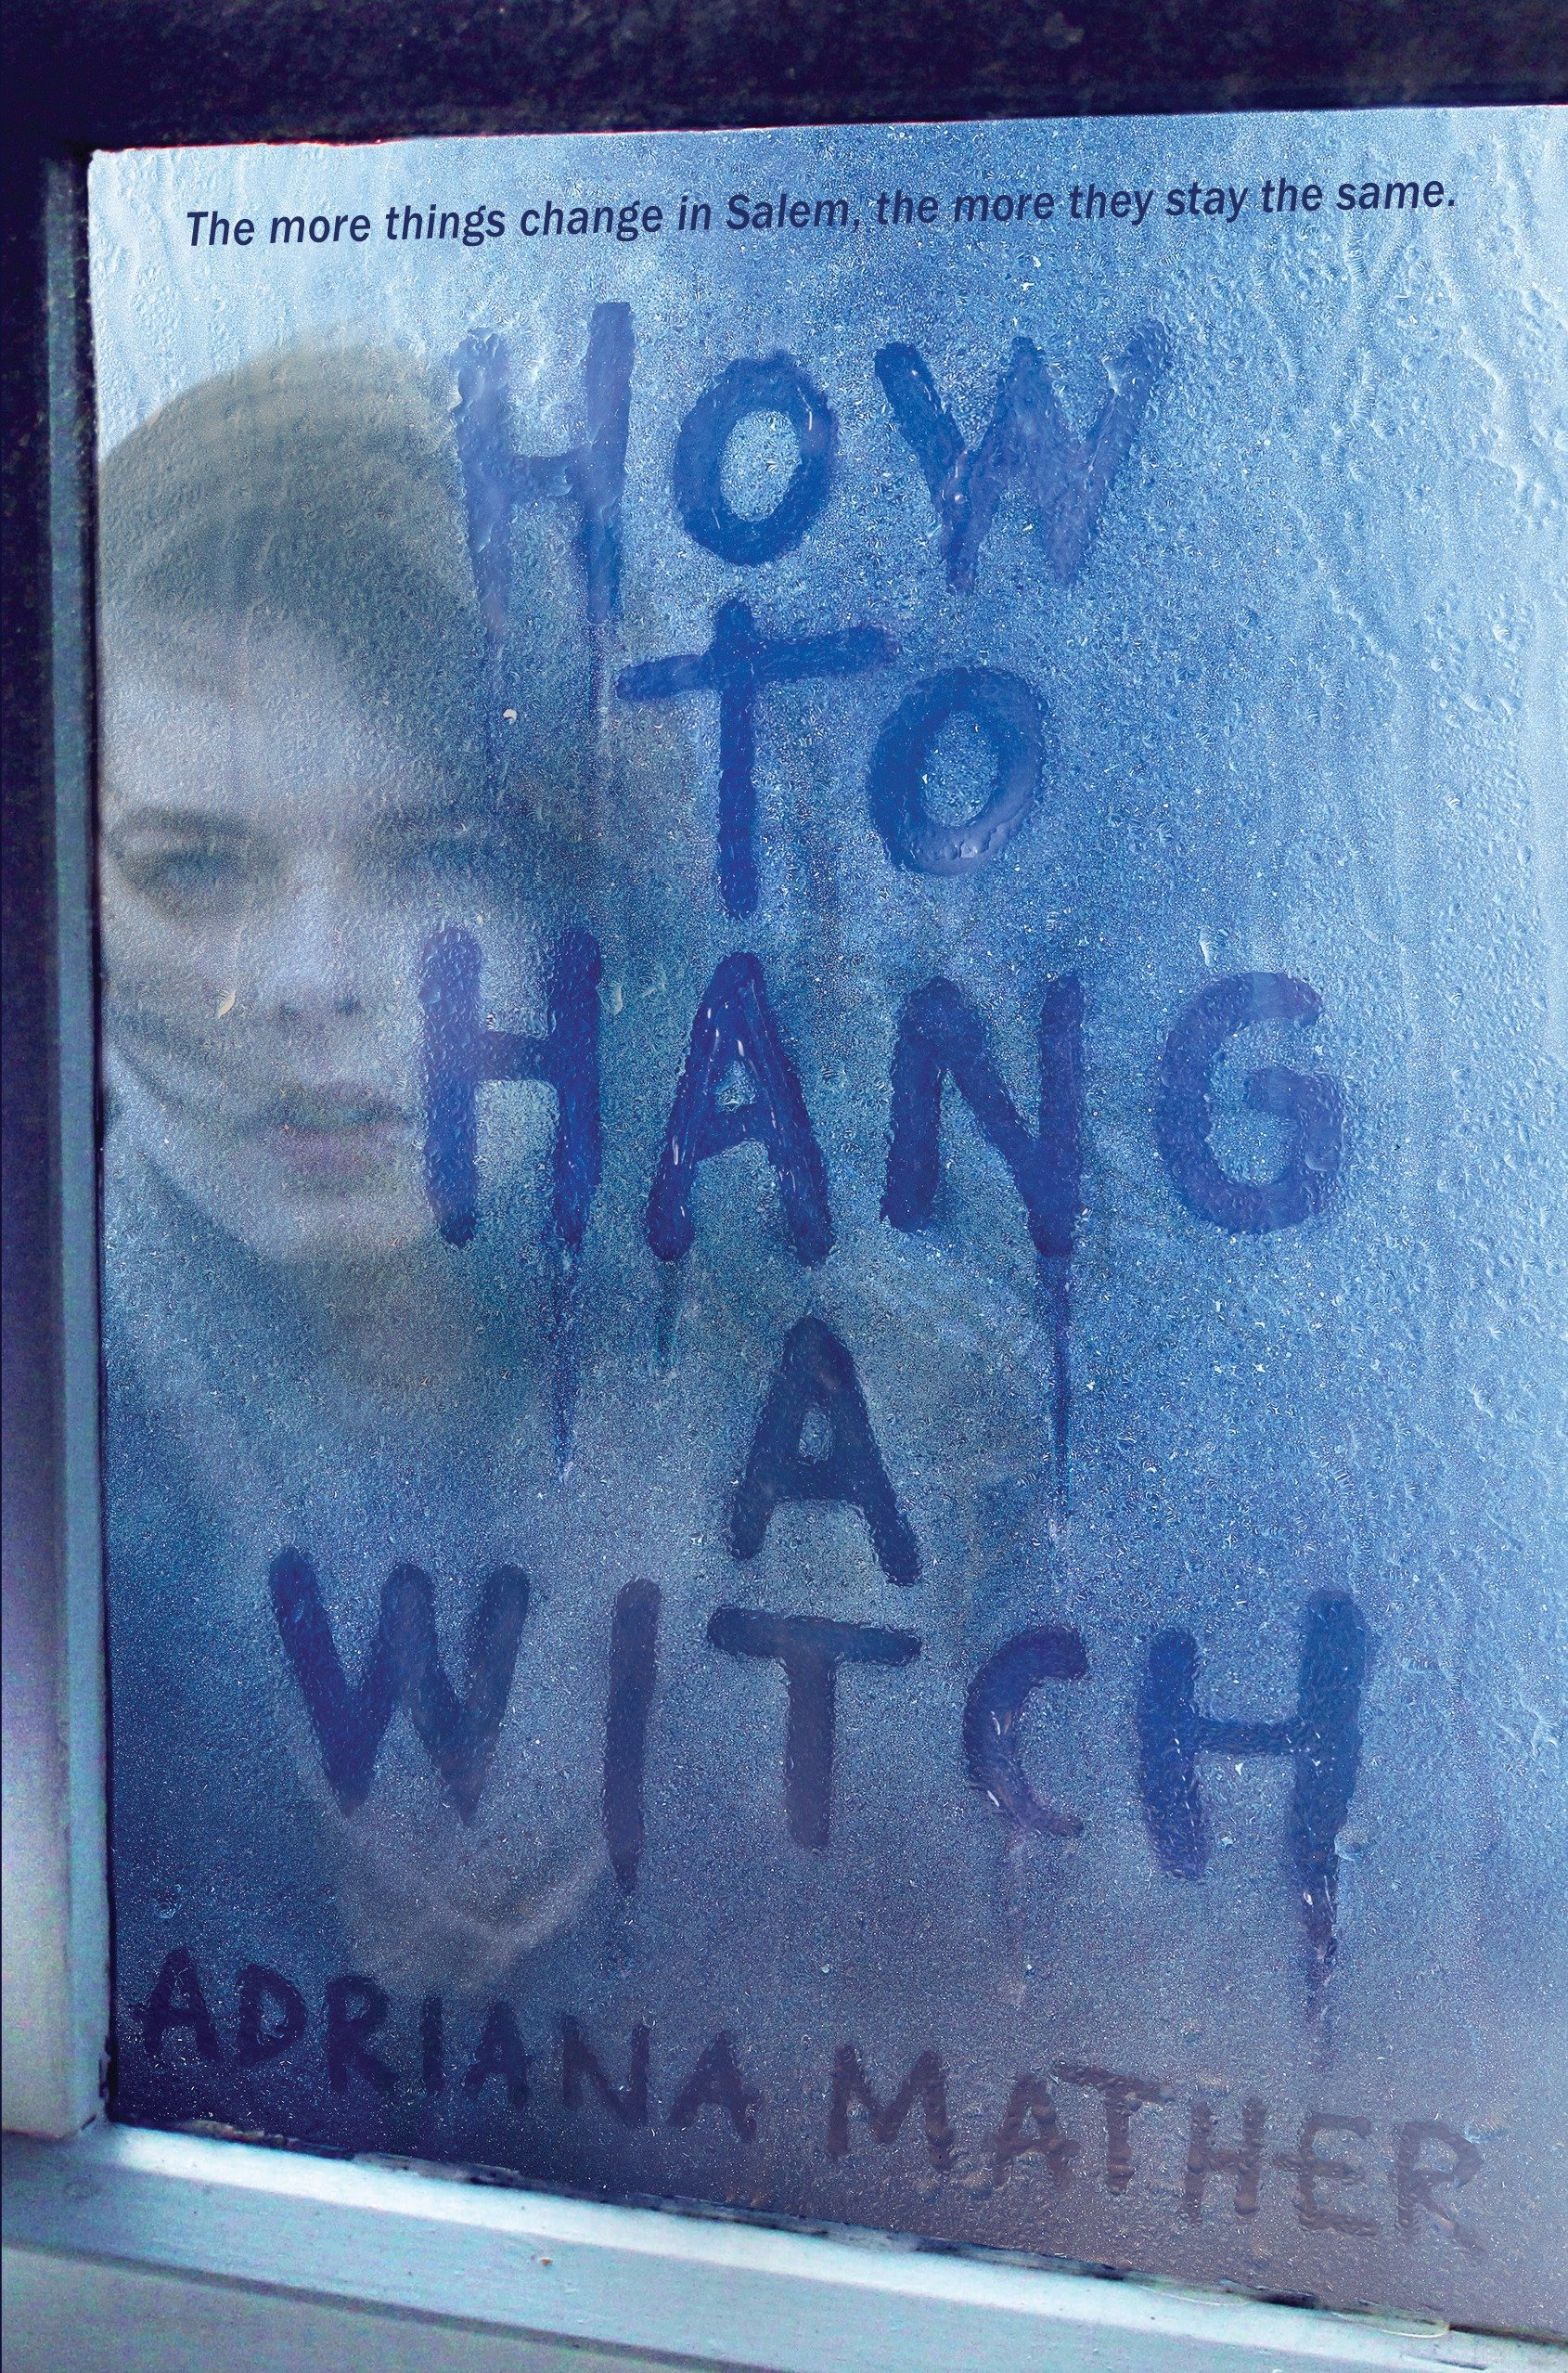 Amazon.com: How to Hang a Witch (9780553539479): Mather, Adriana ...